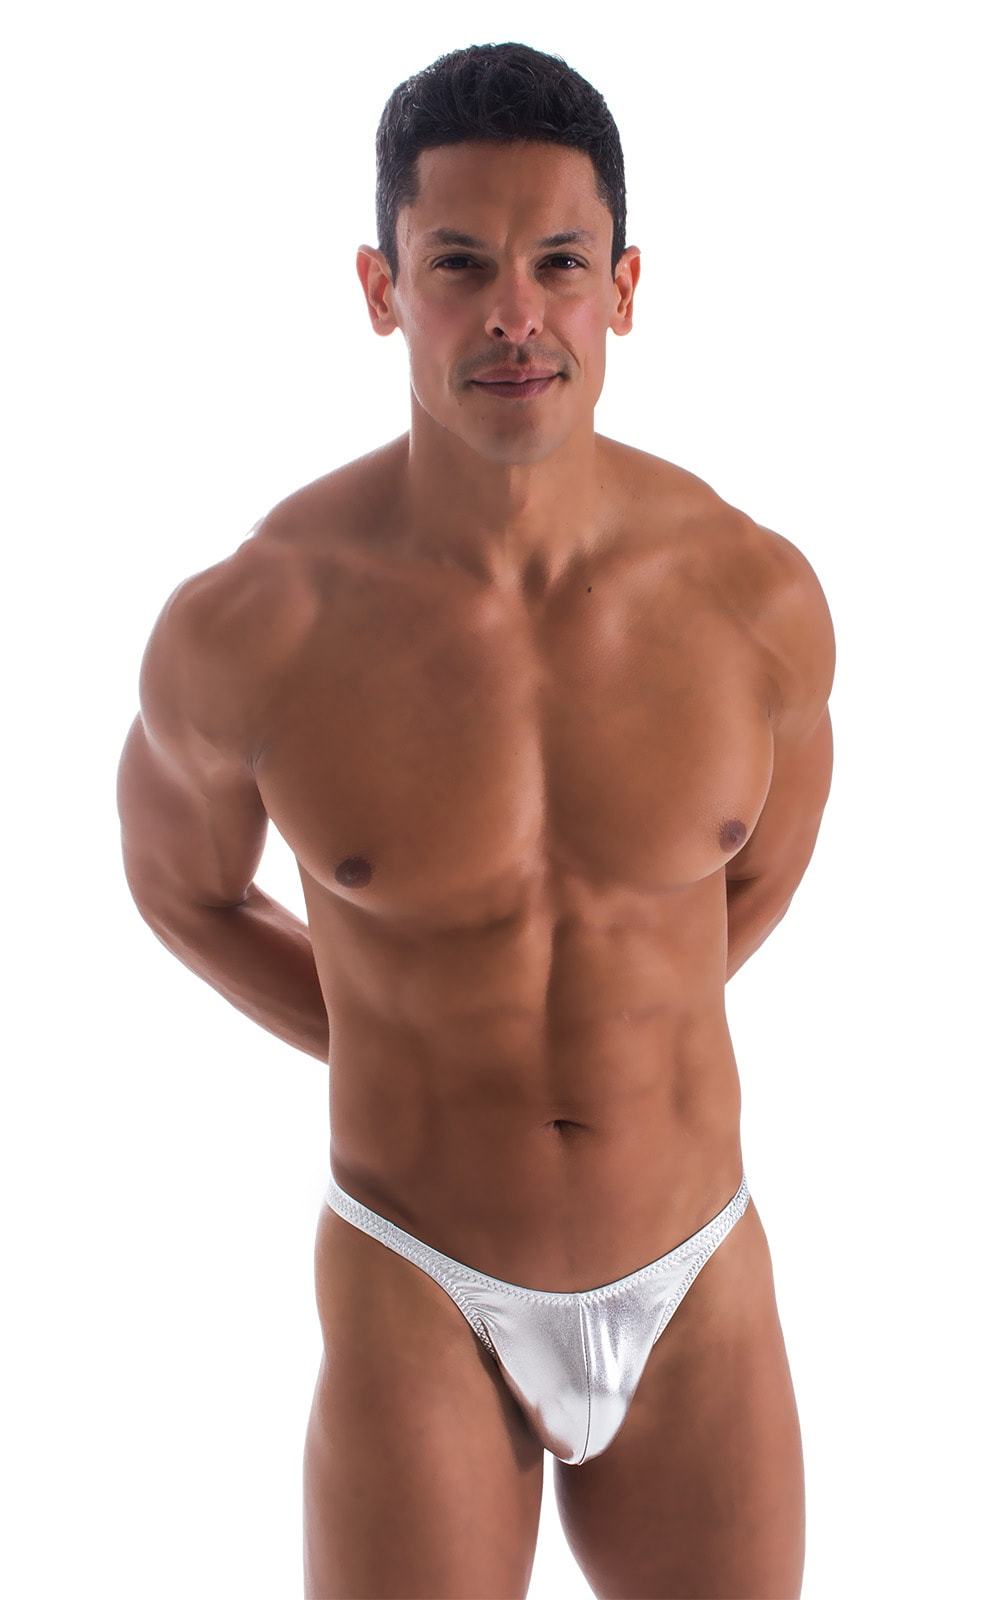 Fitted Pouch - Puckered Back - Bikini in Liquid Silver 1